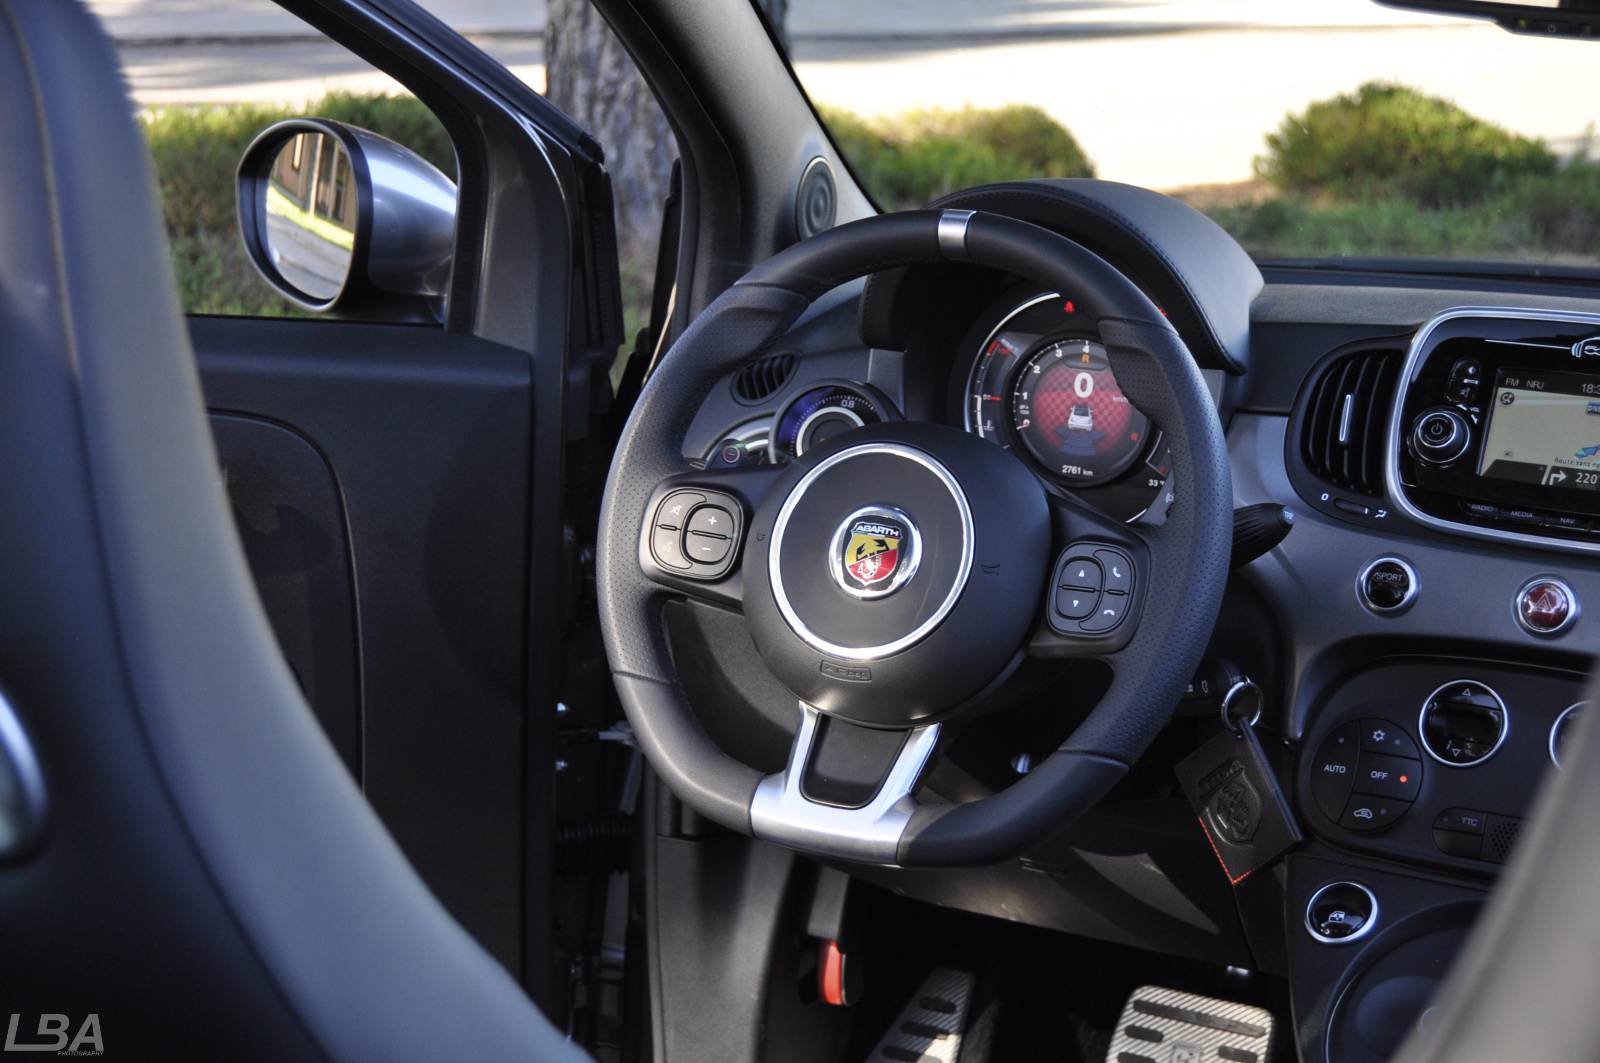 essai abarth 595 competitzione turismo le billet auto test drive. Black Bedroom Furniture Sets. Home Design Ideas